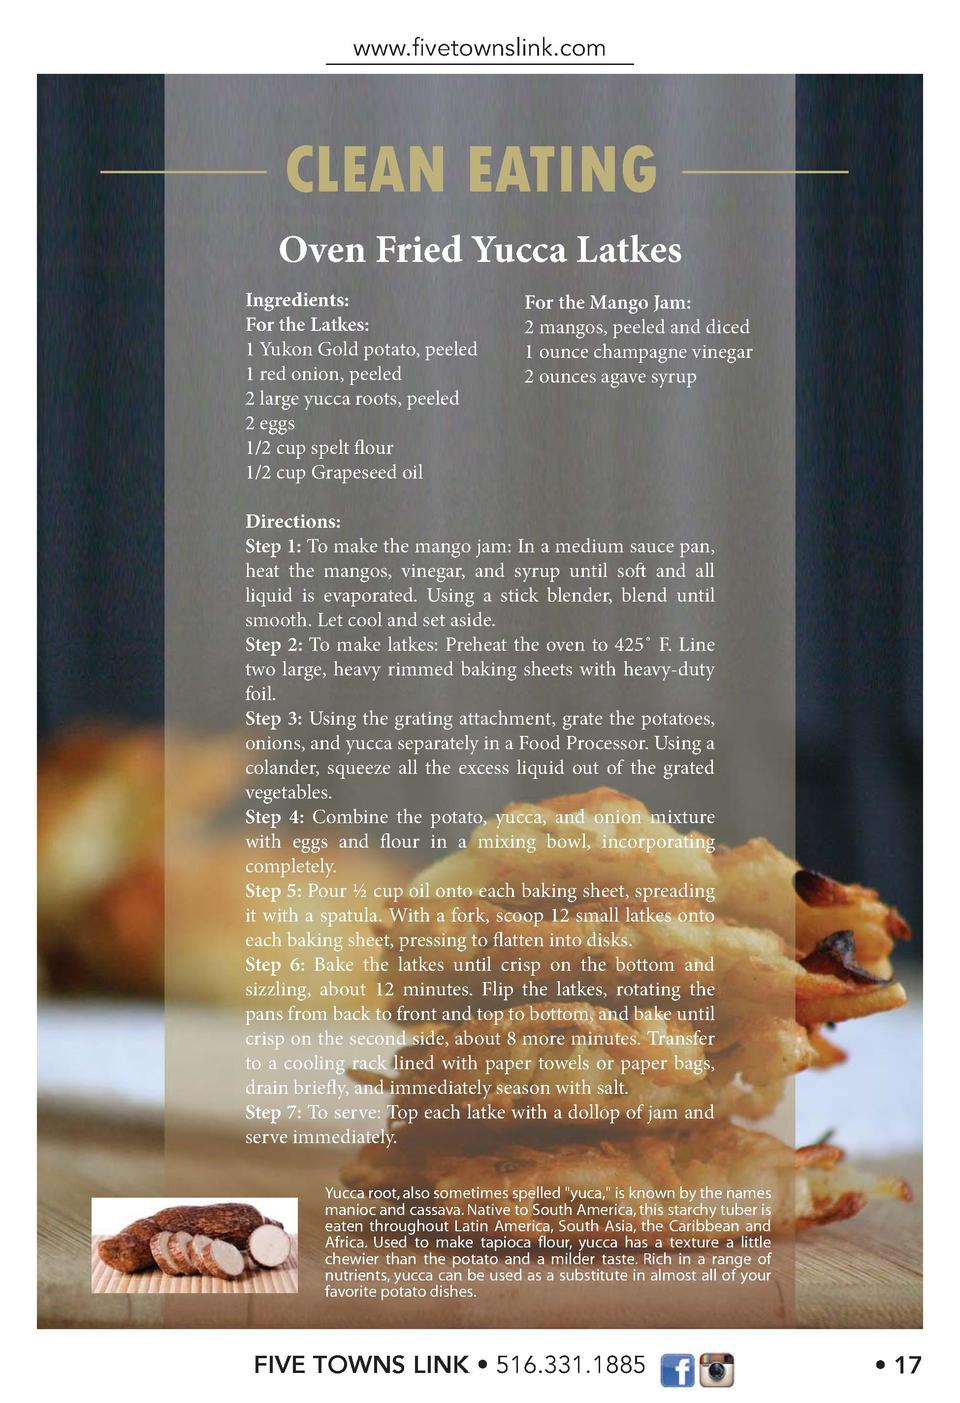 www.   vetownslink.com  CLEAN EATING Oven Fried Yucca Latkes Ingredients  For the Latkes  1 Yukon Gold potato, peeled 1 re...